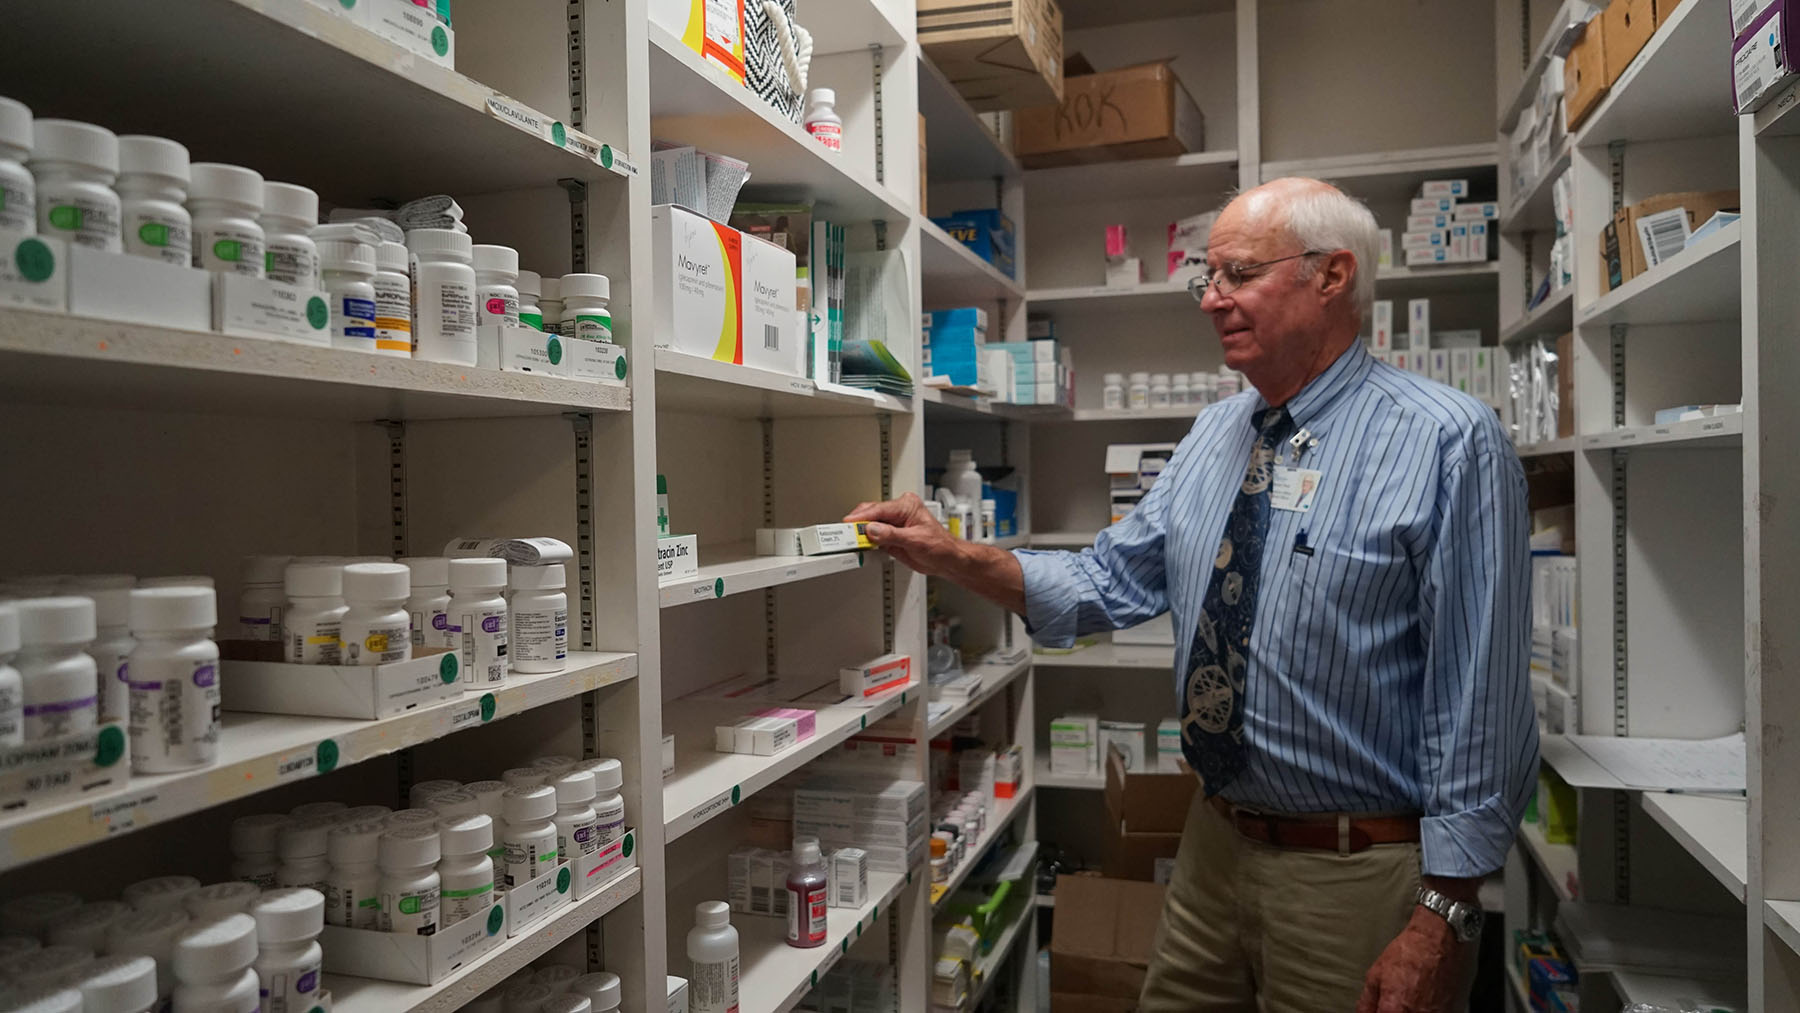 Dr. Chuck Fenzi inventories medicines at the Westside Neighborhood Clinic. Since 2017, Direct Relief has provided health centers, clinics, and organizations across the country with over 350,000 vials of Naloxone, including the Santa Barbara Neighborhood Clinics. (Amarica Rafanelli/Direct Relief)